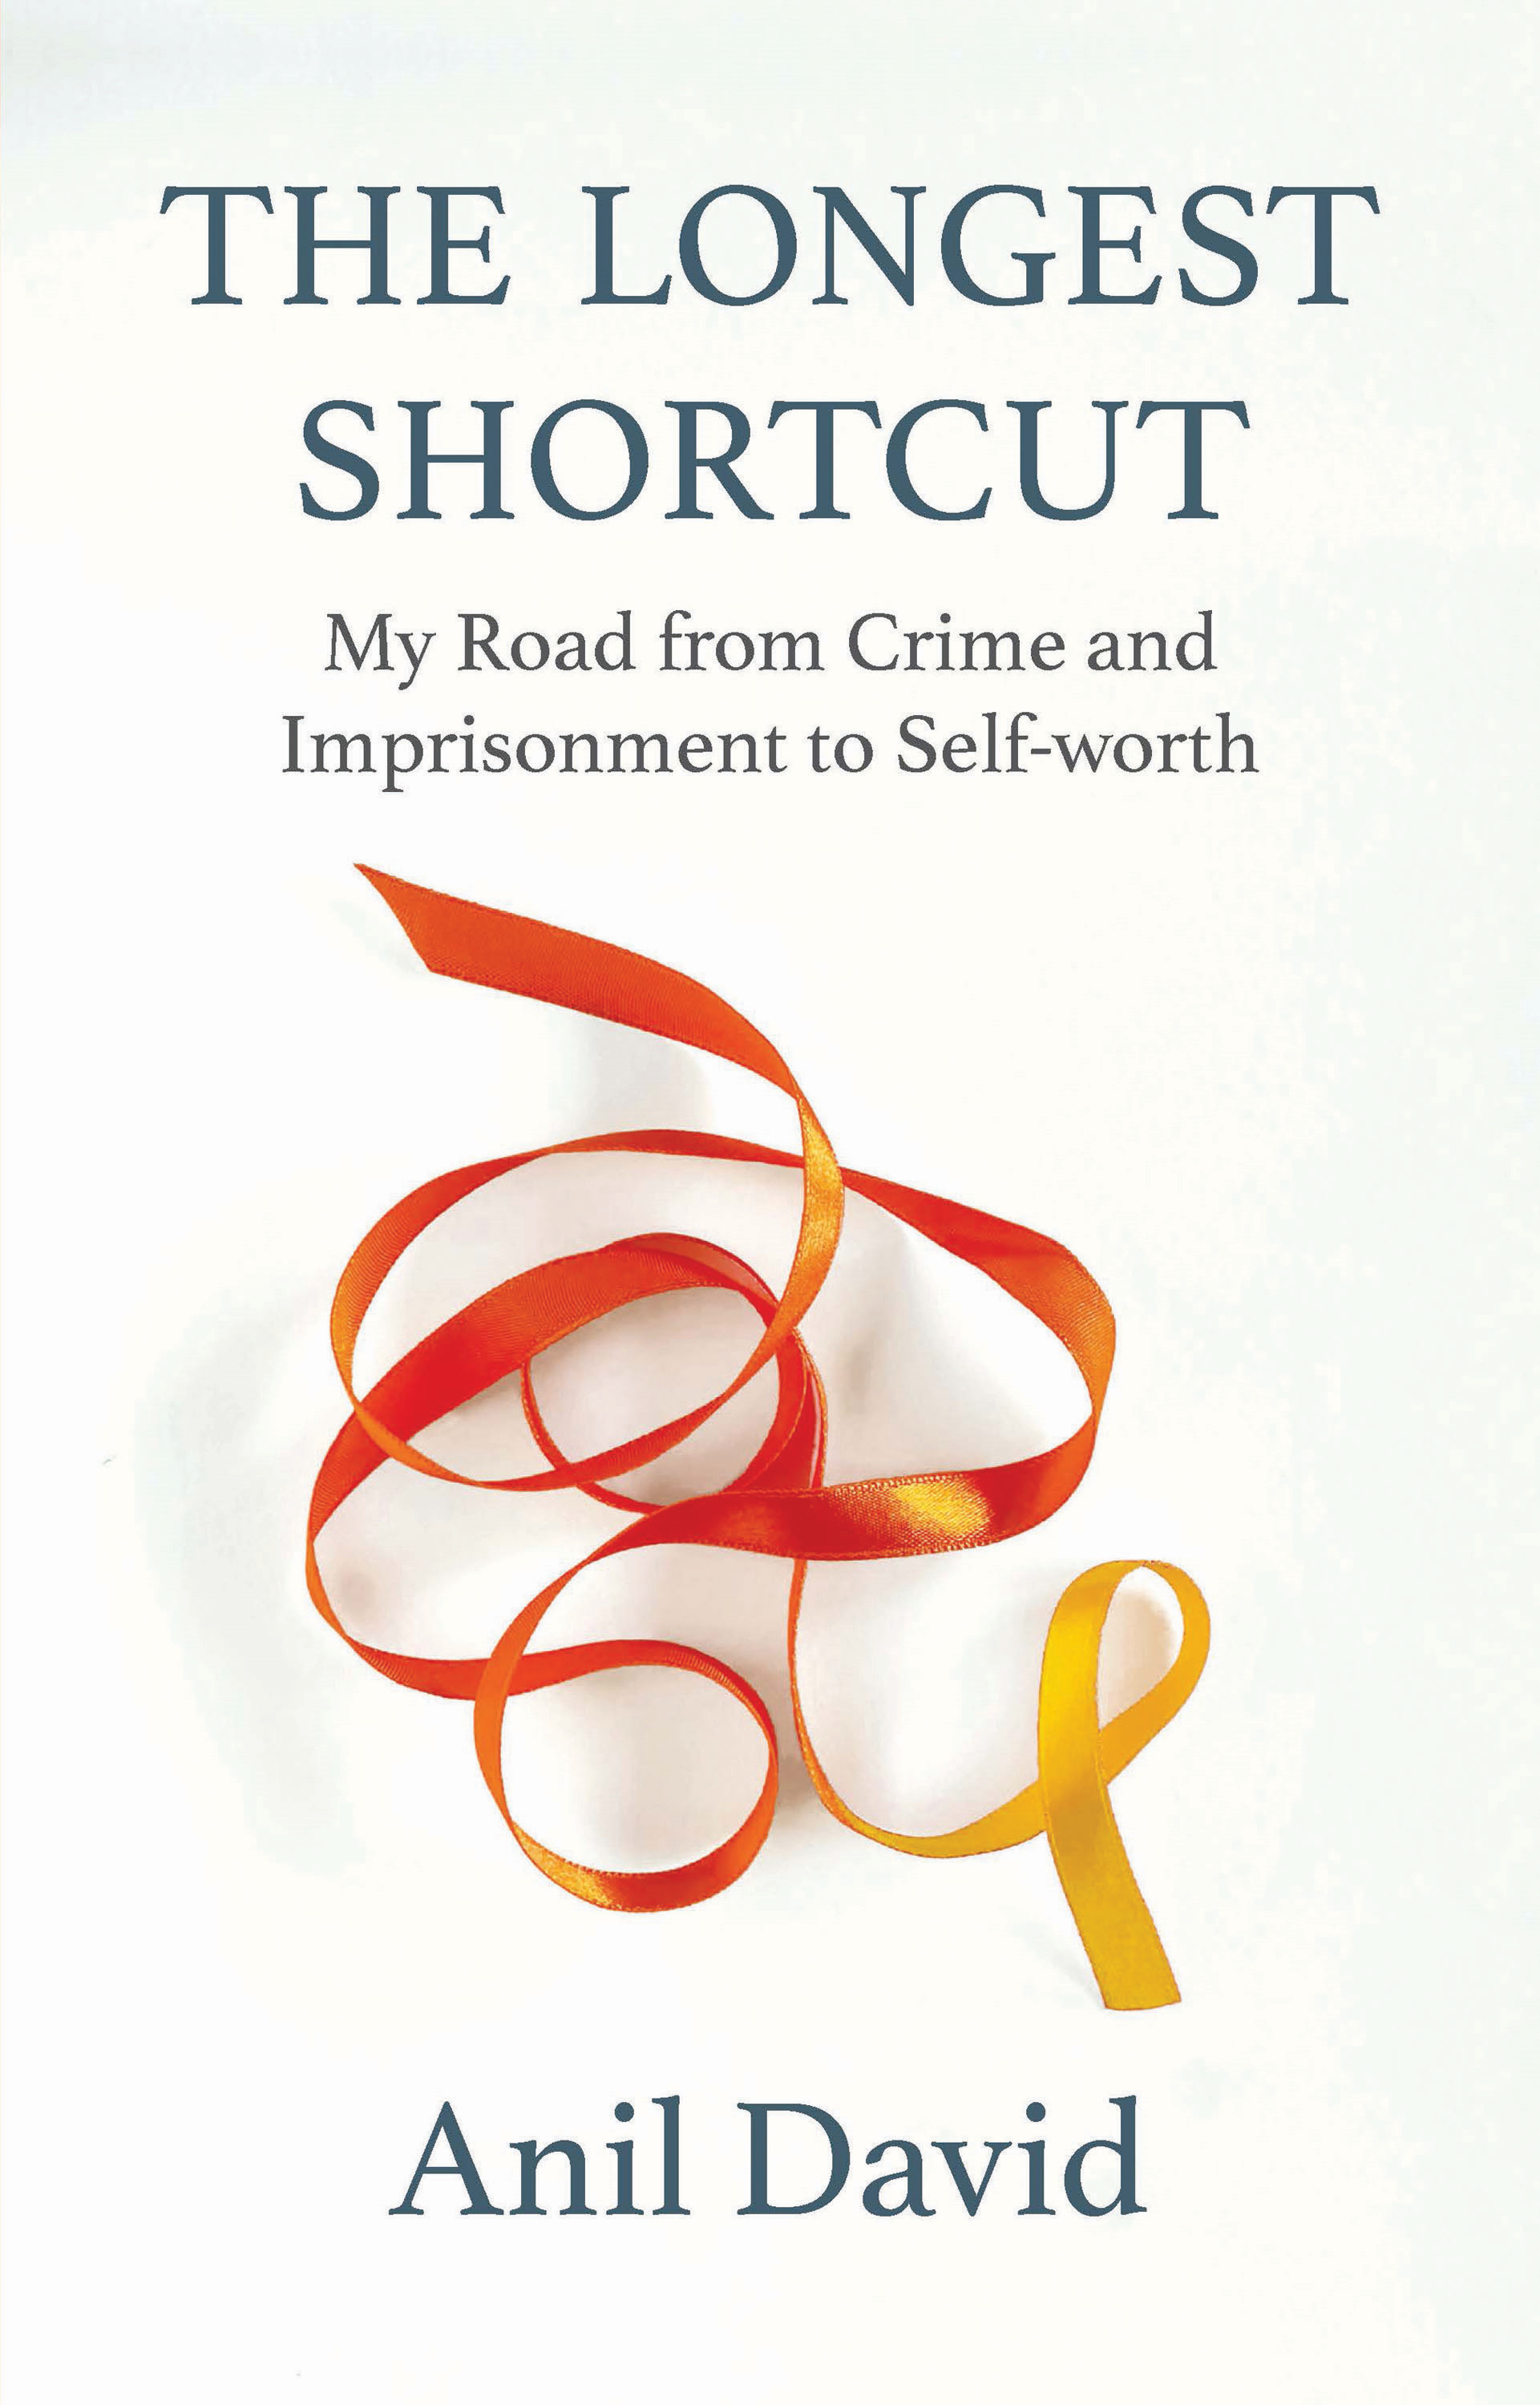 The Longest Shortcut: My Road from Crime and Imprisonment to Self-worth